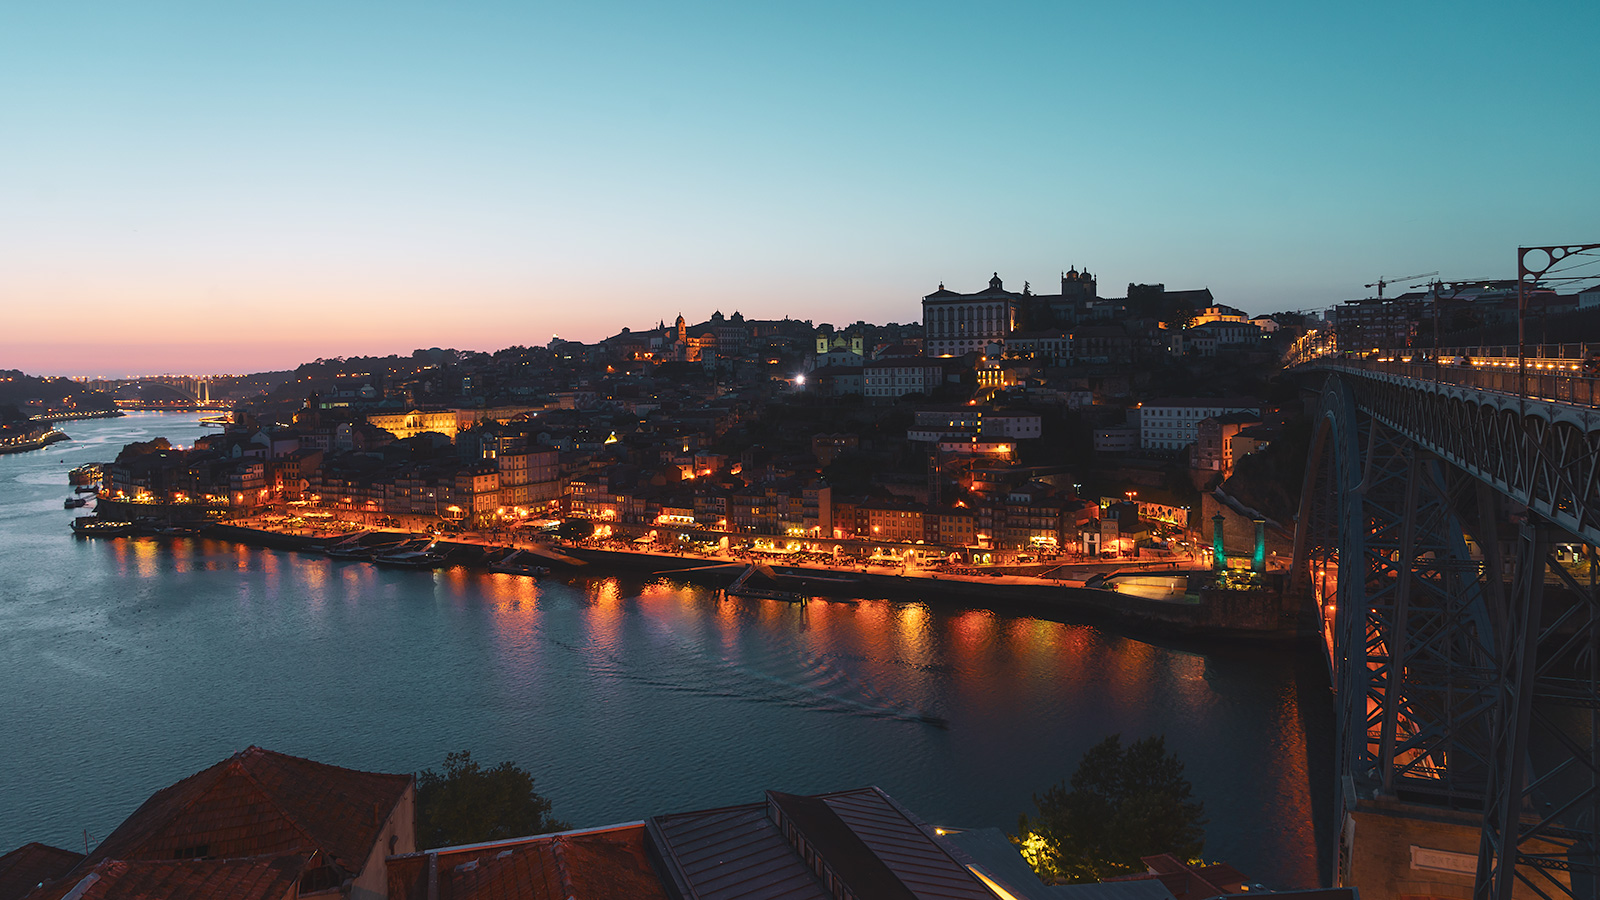 View over Douro River, Porto, Portugal